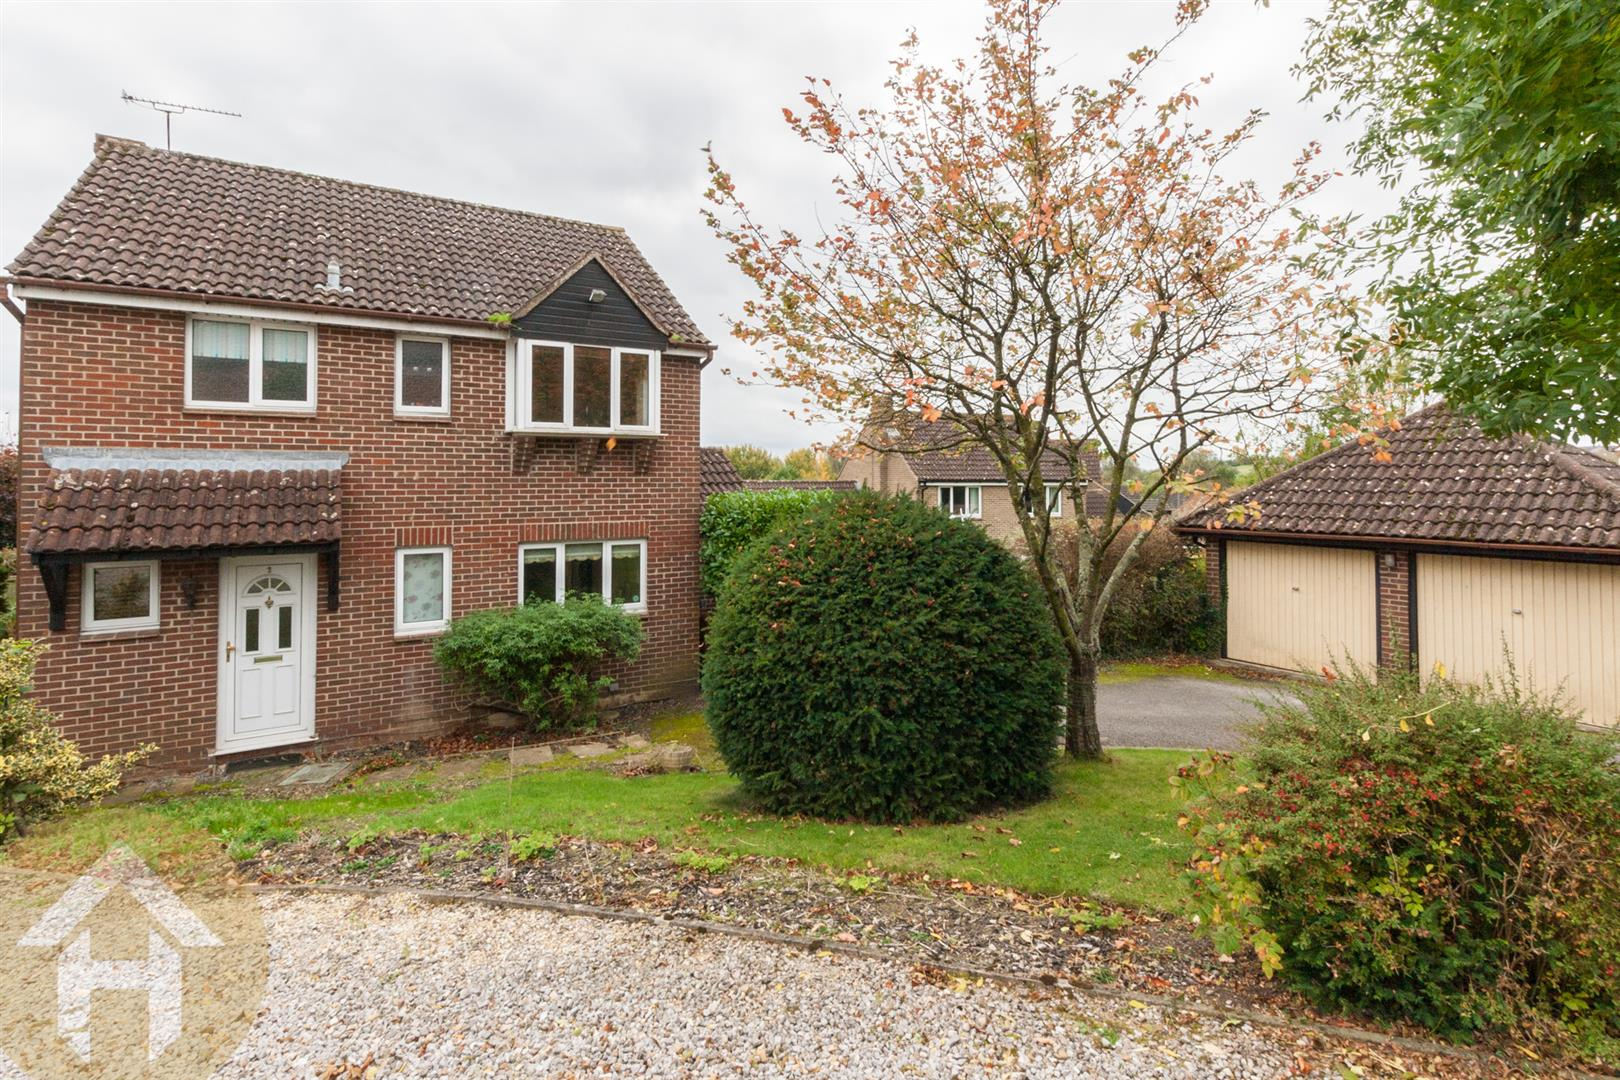 3 Bedrooms Detached House for sale in Garraways, Royal Wootton Bassett